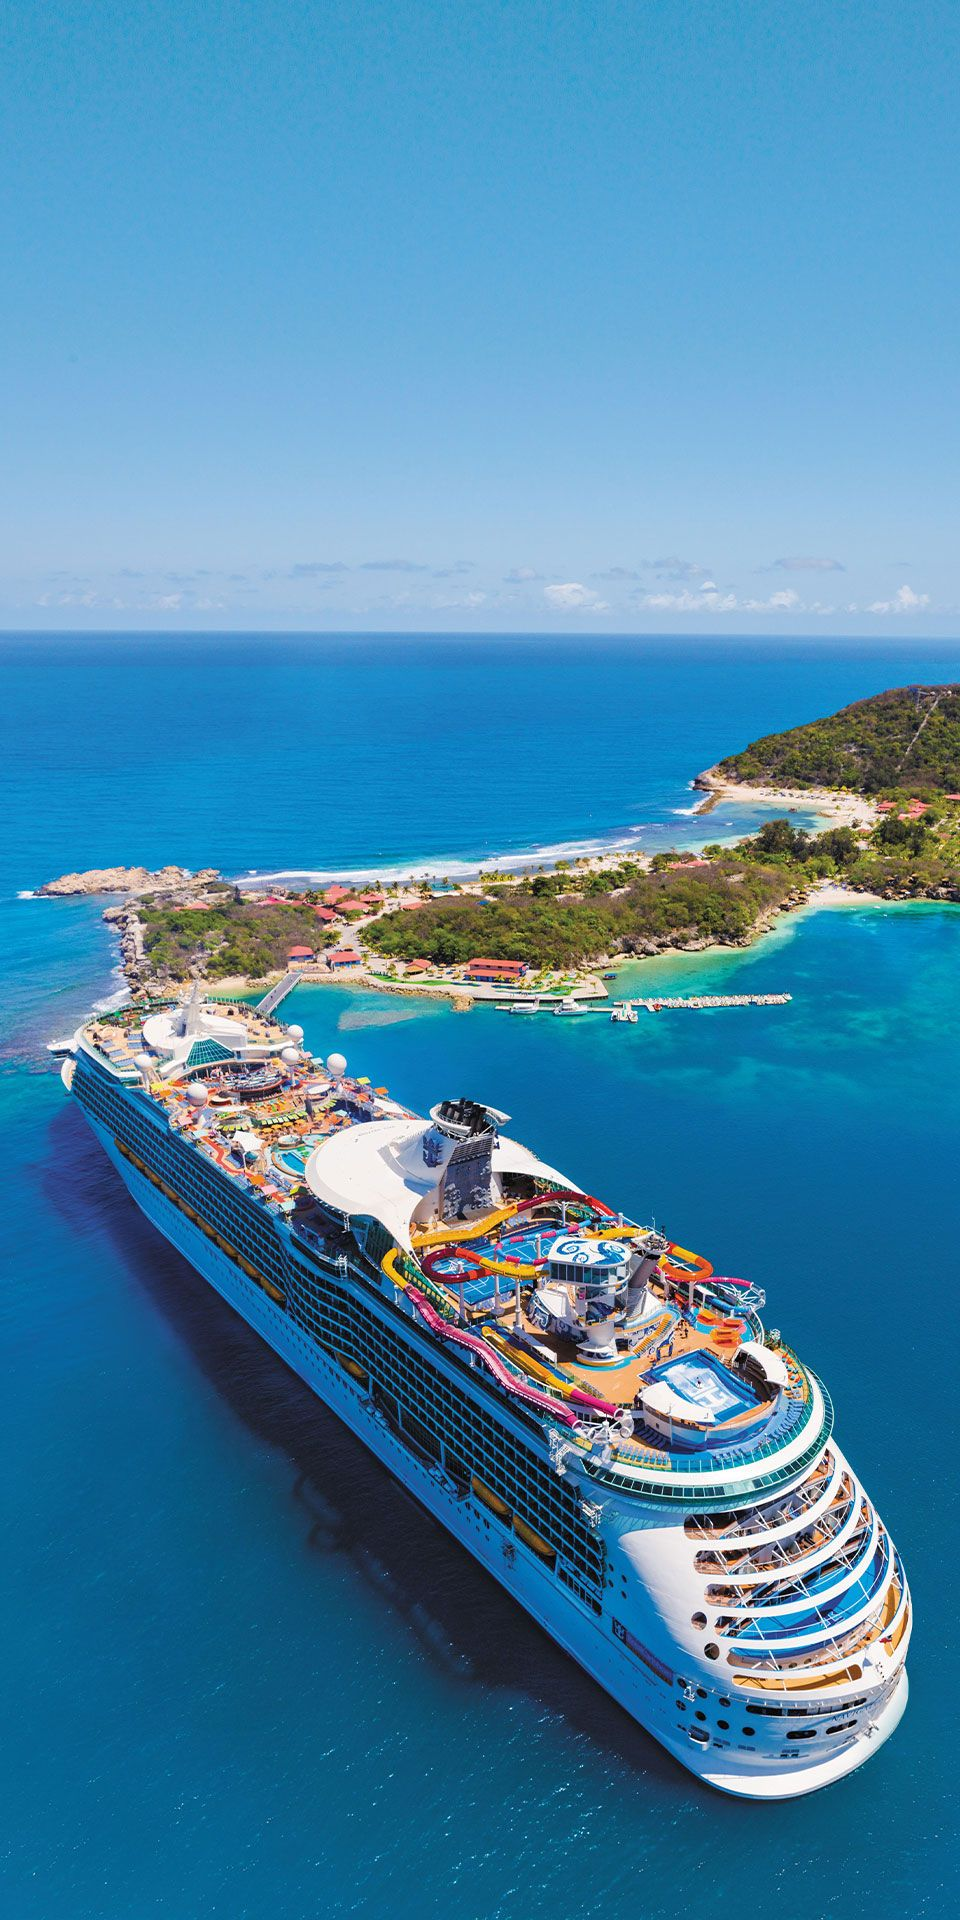 Labadee Haiti What Would You Do With 8 Hours In Labadee Chase An Adrenaline Rush In 2020 Best Cruise Ships Royal Caribbean Cruise Ship Royal Caribbean Cruise Lines